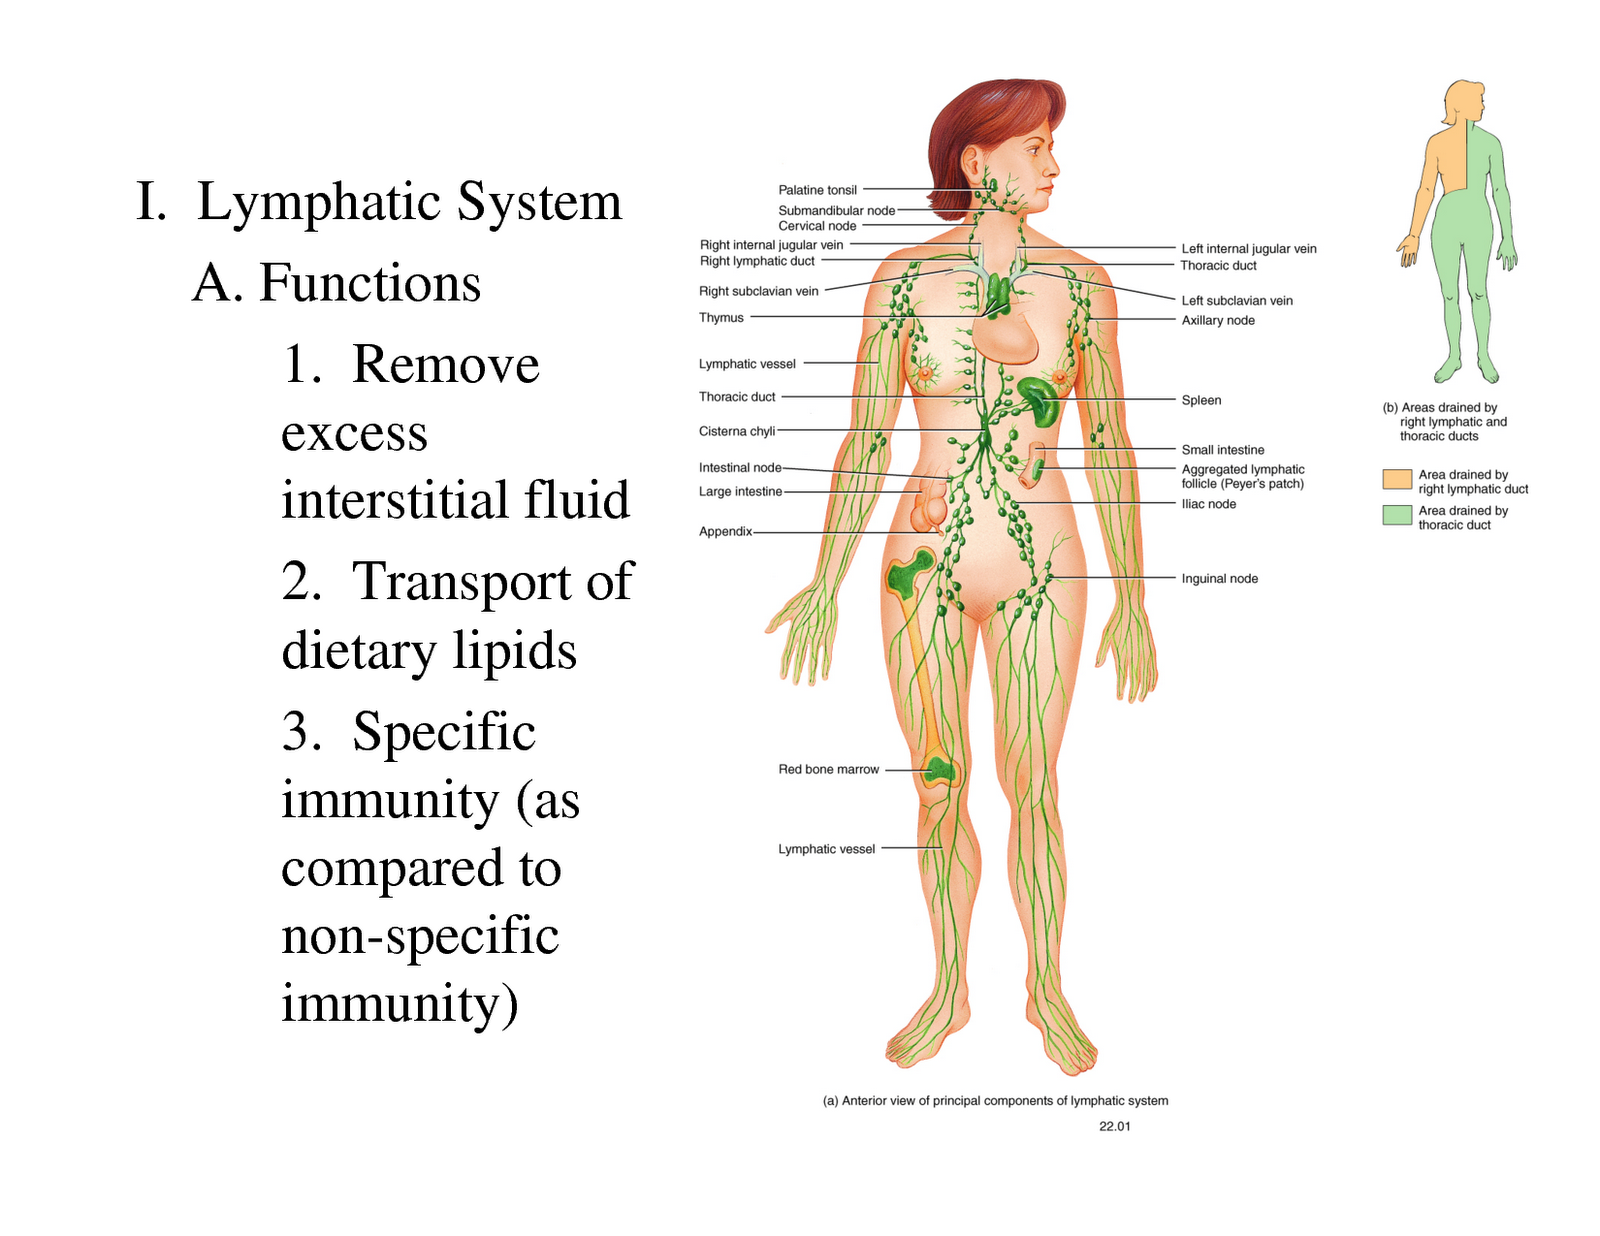 Forum on this topic: How to Cleanse the Lymph System, how-to-cleanse-the-lymph-system/